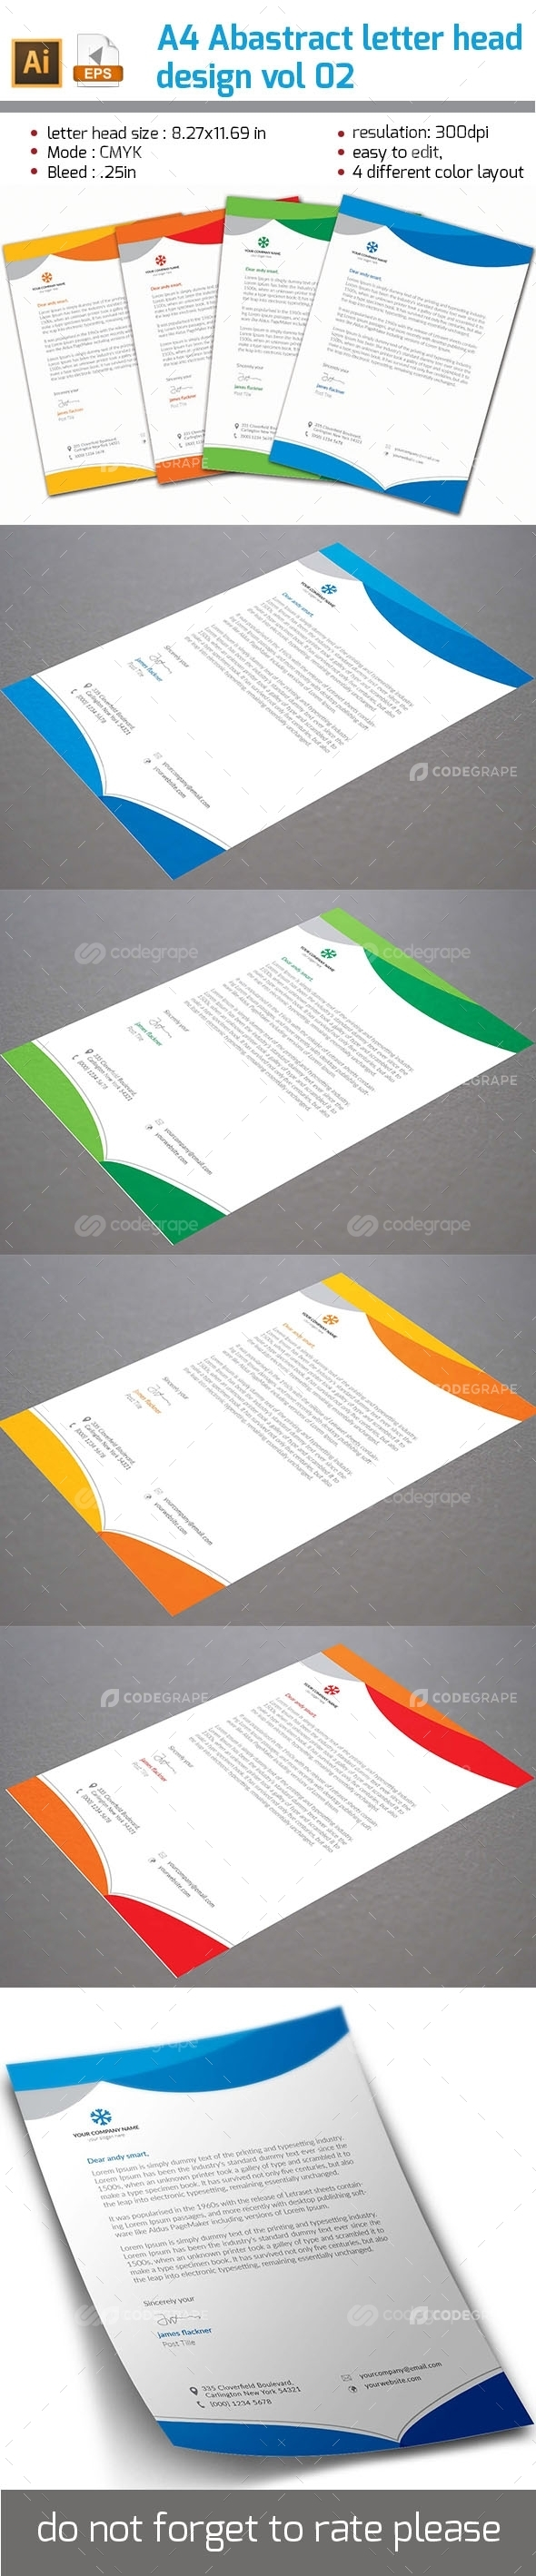 Abstract Letter Head Design vol 02